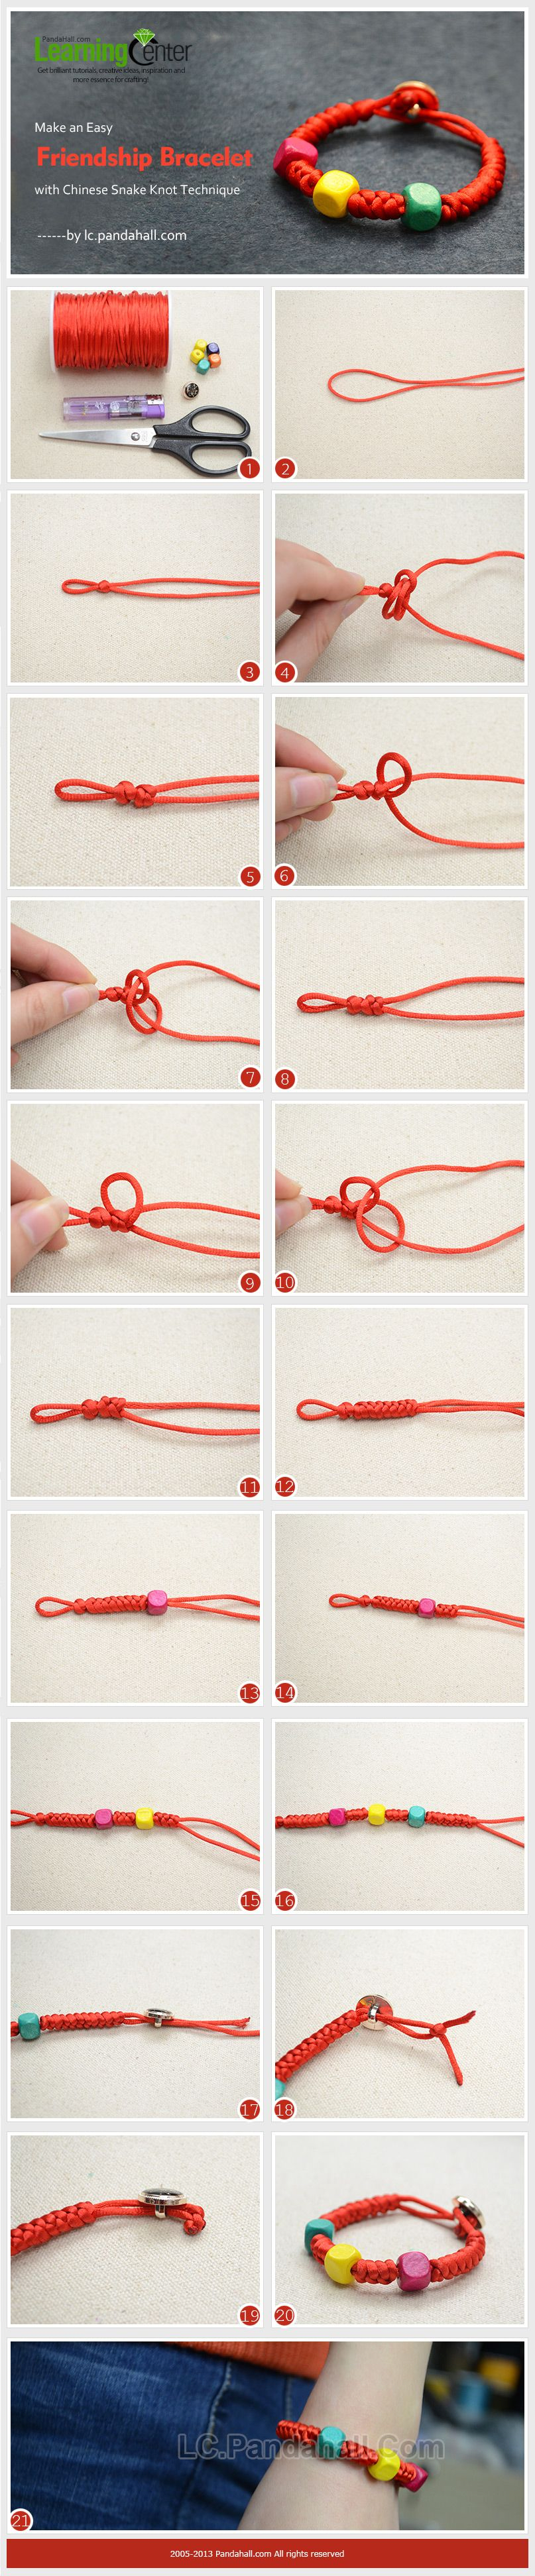 How to make a double coin snake knot bracelet paracord blog.